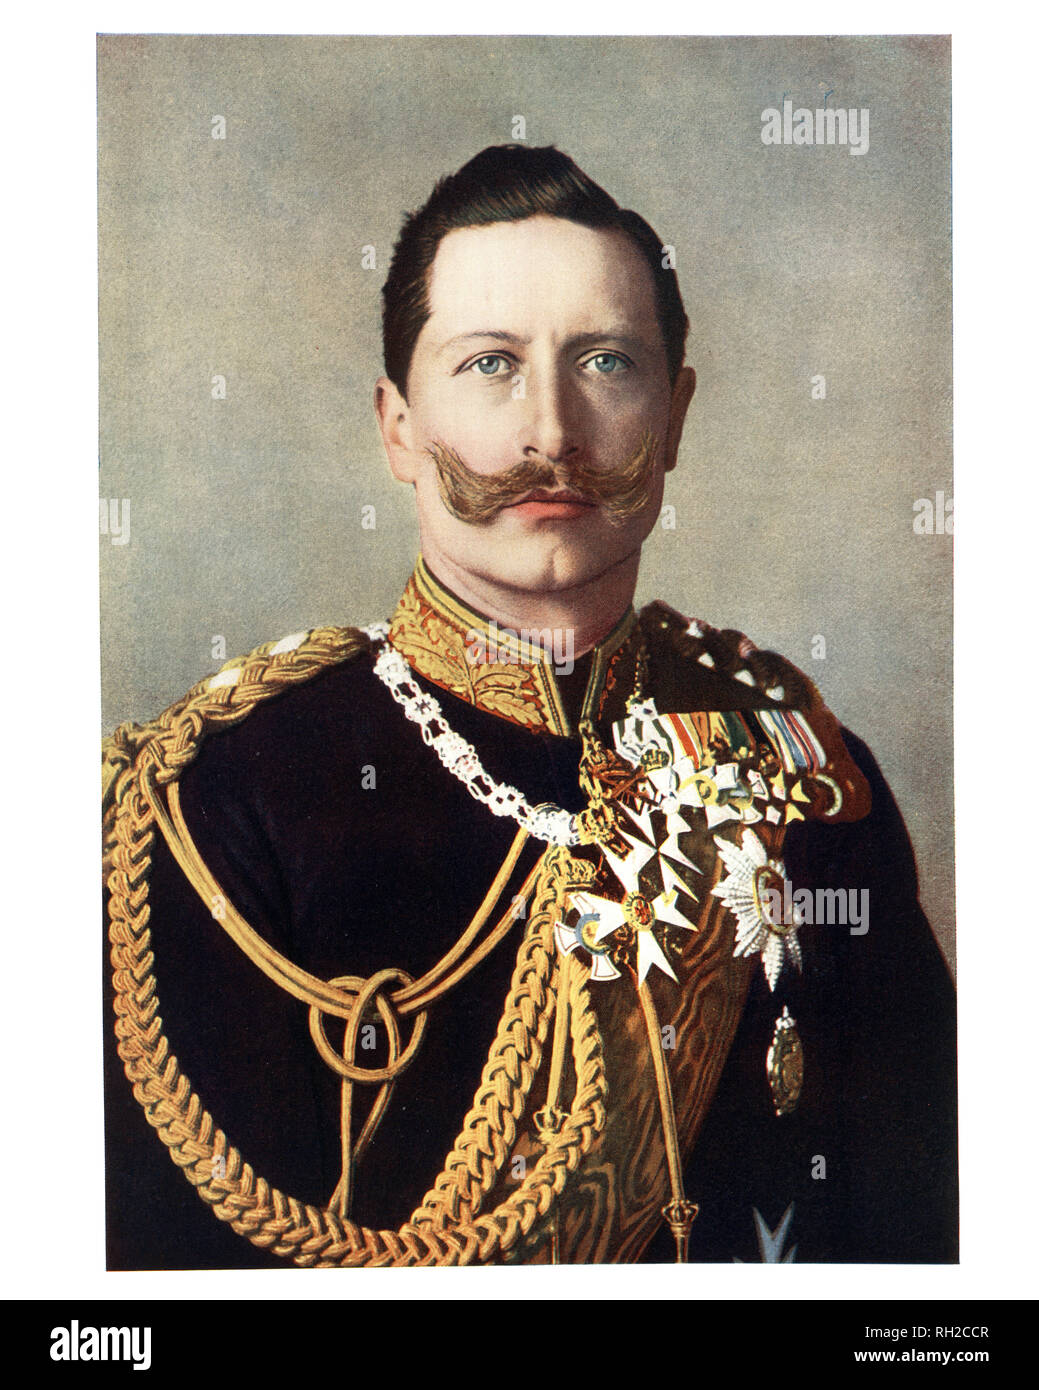 Wilhelm II, German Emperor the last German Emperor (Kaiser) and King of Prussia, reigning from 15 June 1888 until his abdication on 9 November 1918 - Stock Image